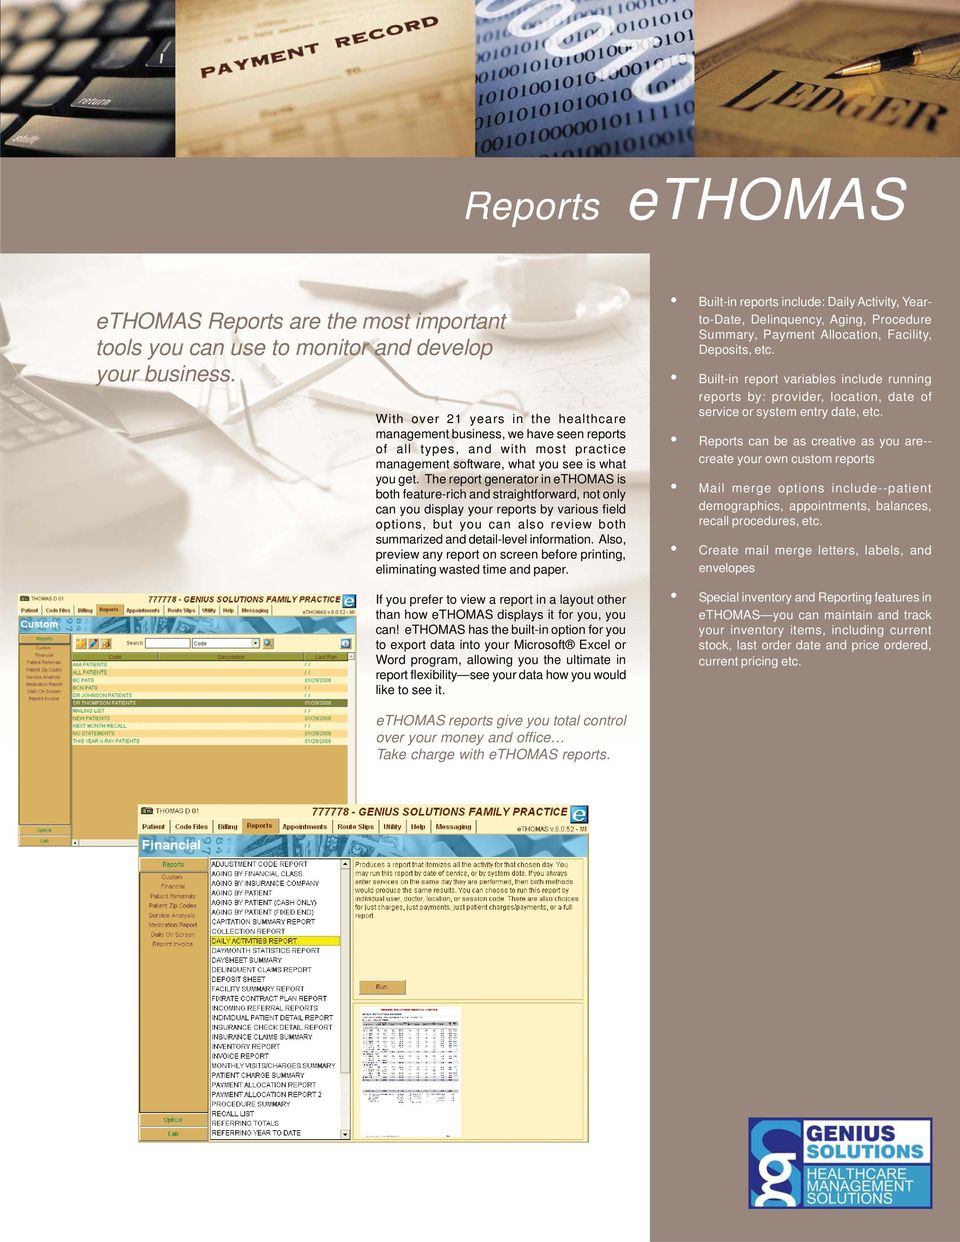 The report generator in ethomas is both feature-rich and straightforward, not only can you display your reports by various field options, but you can also review both summarized and detail-level